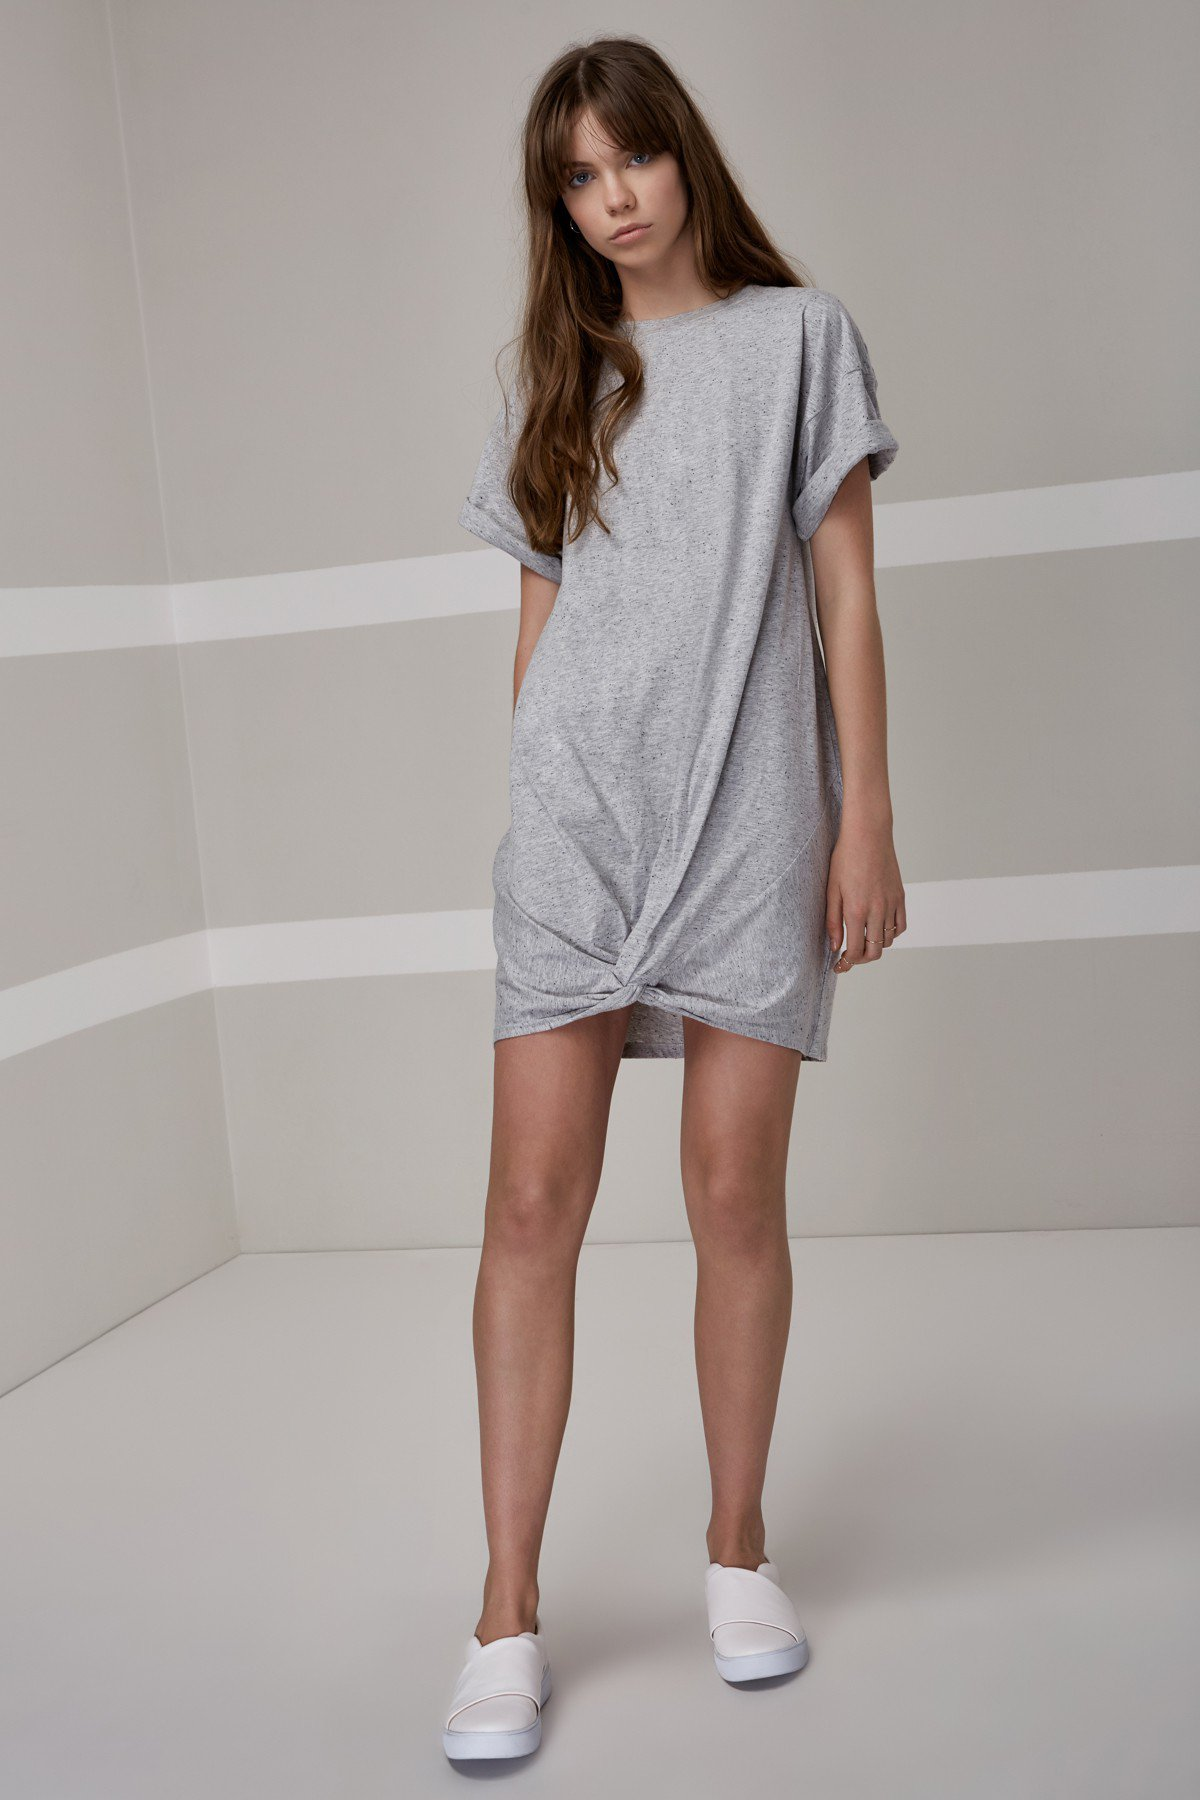 47b6d1e7e897 The Fifth Label Off Duty T-Shirt Dress